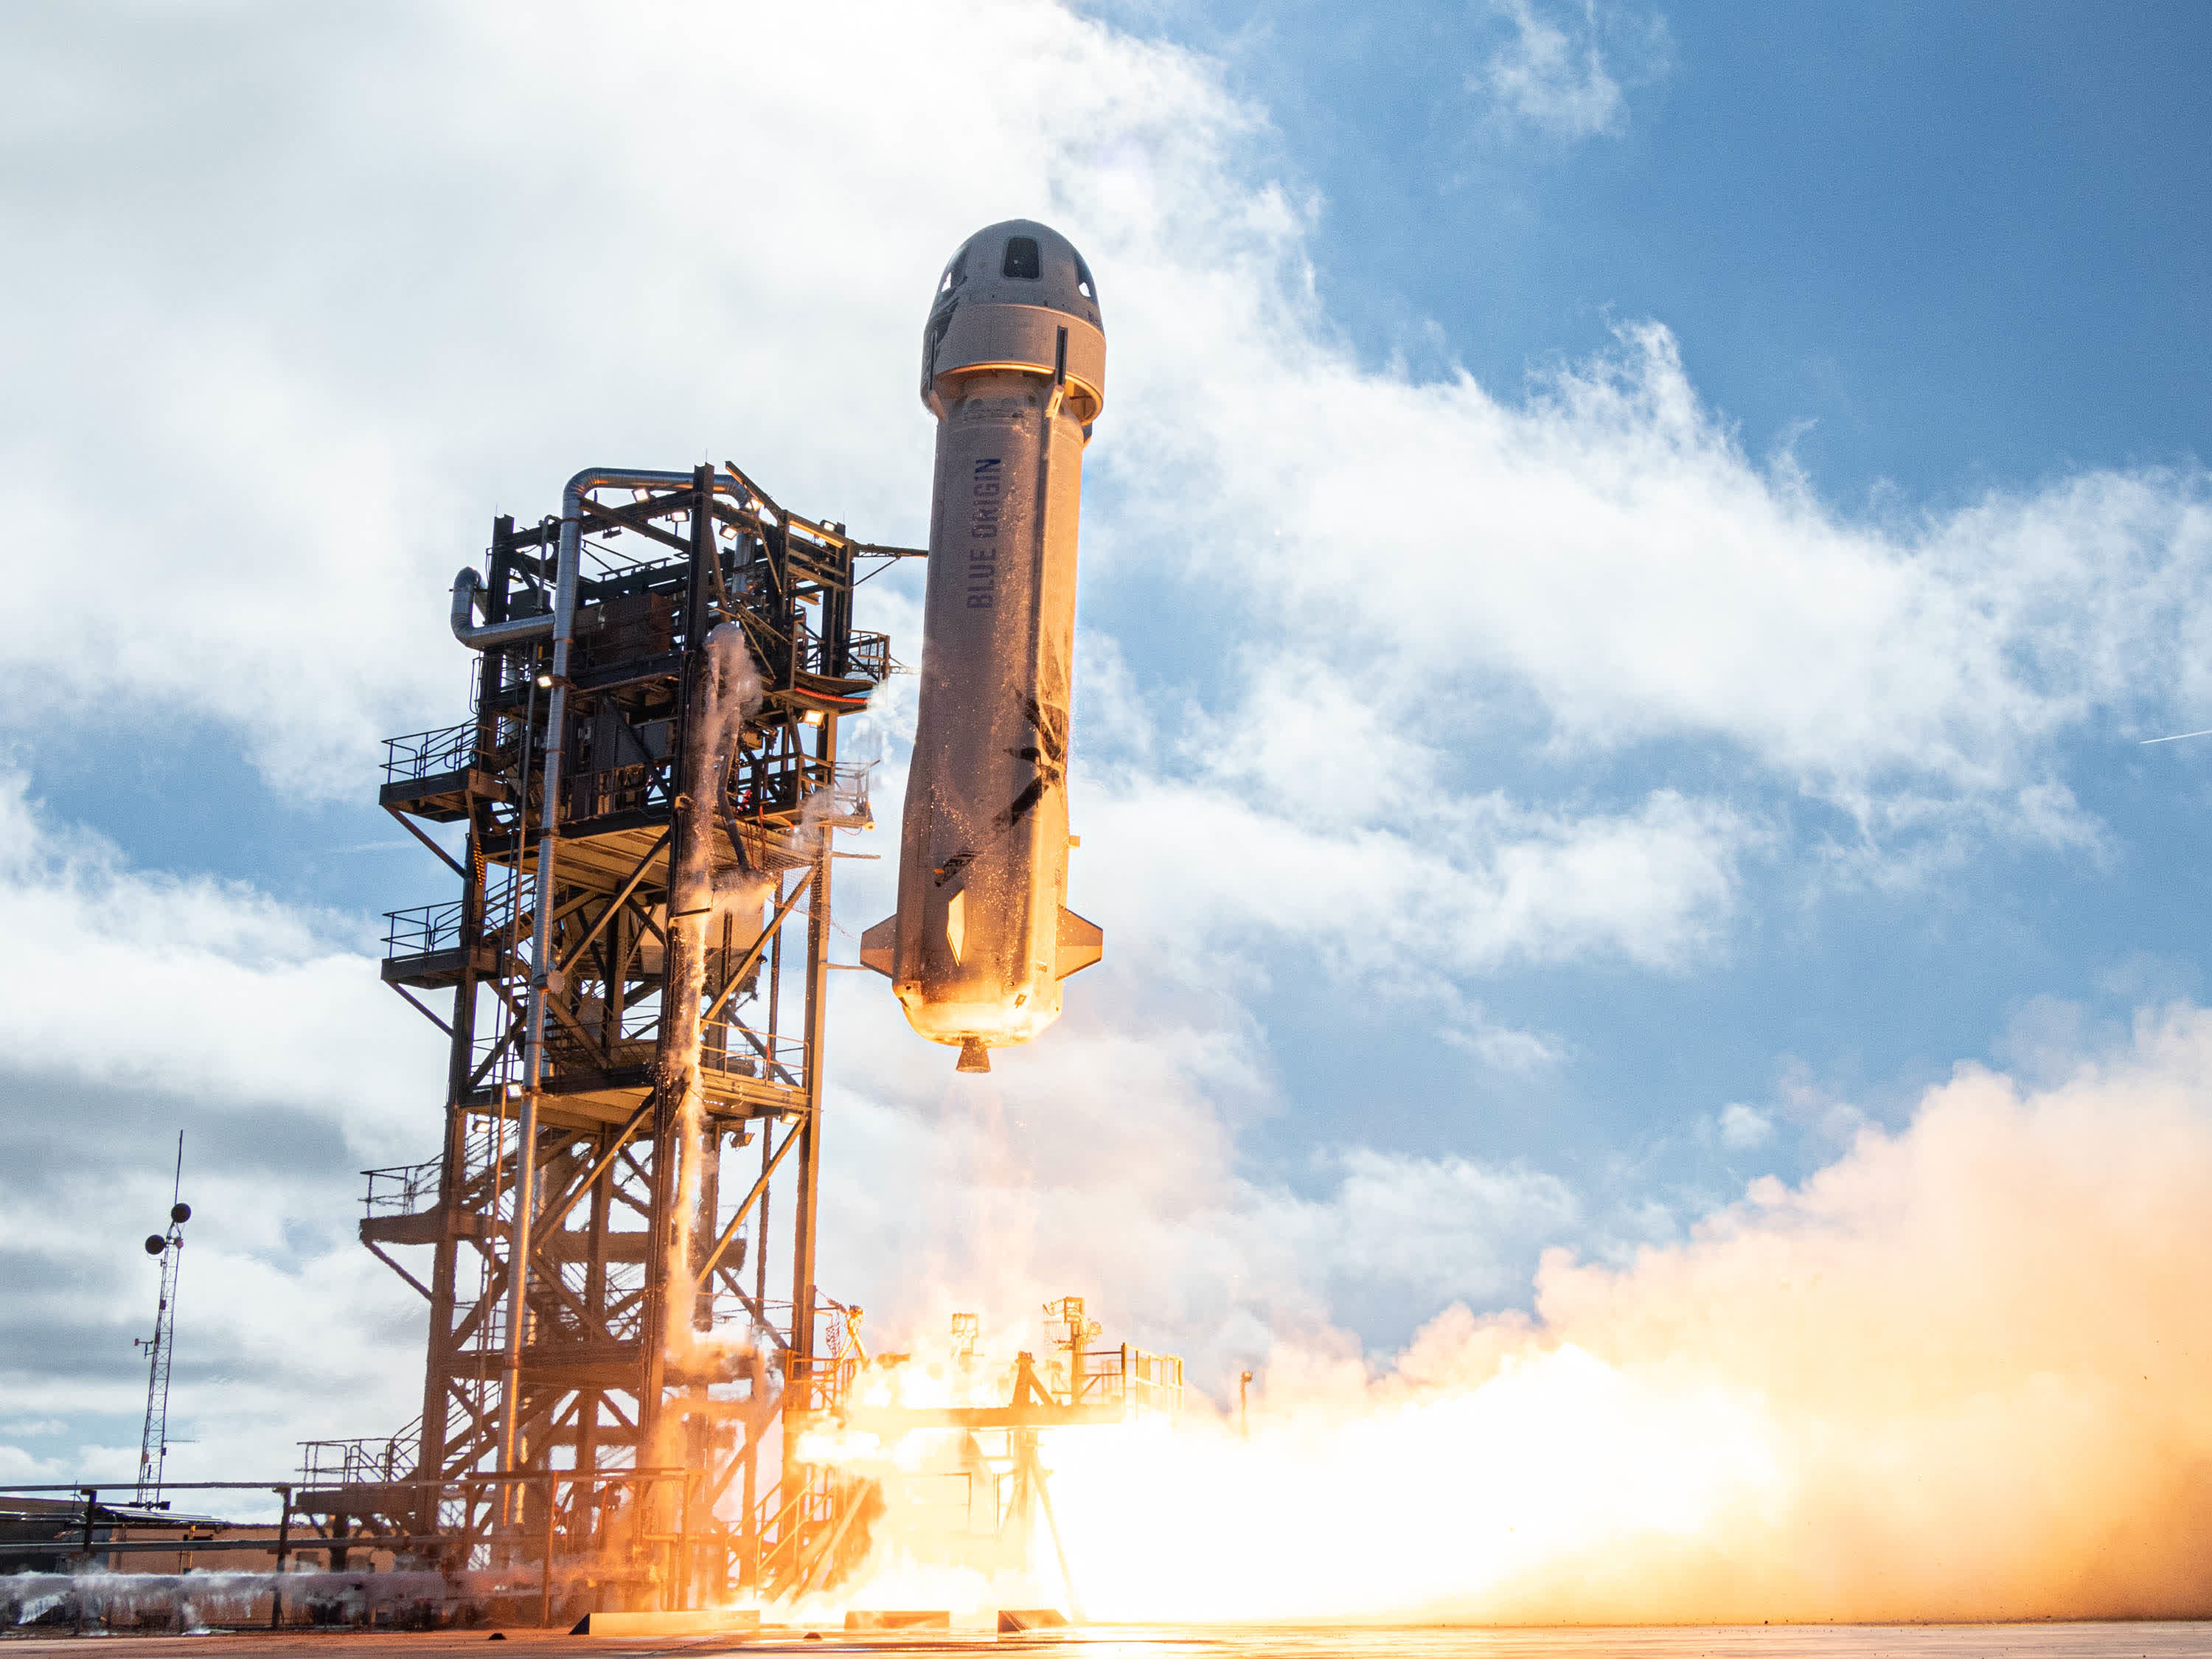 Blue Origin successfully completes its first crewed spaceflight with Bezos in tow